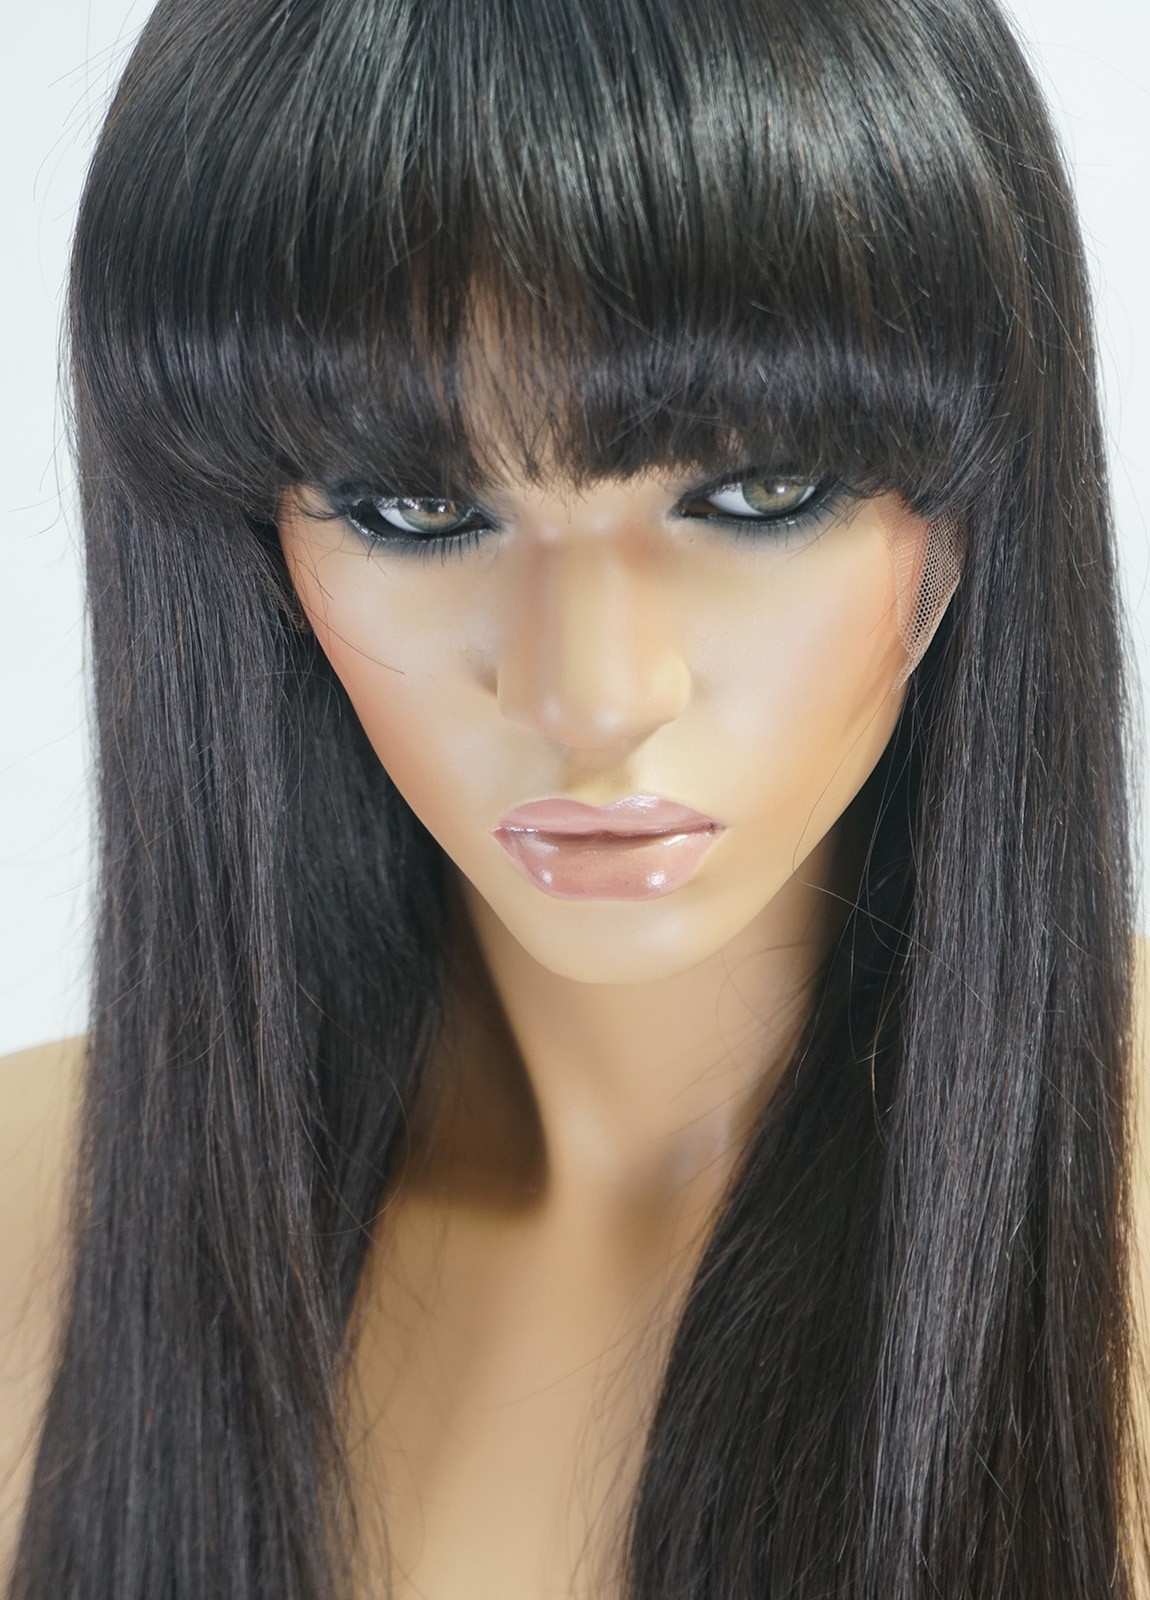 Silk Top Wig with bangs